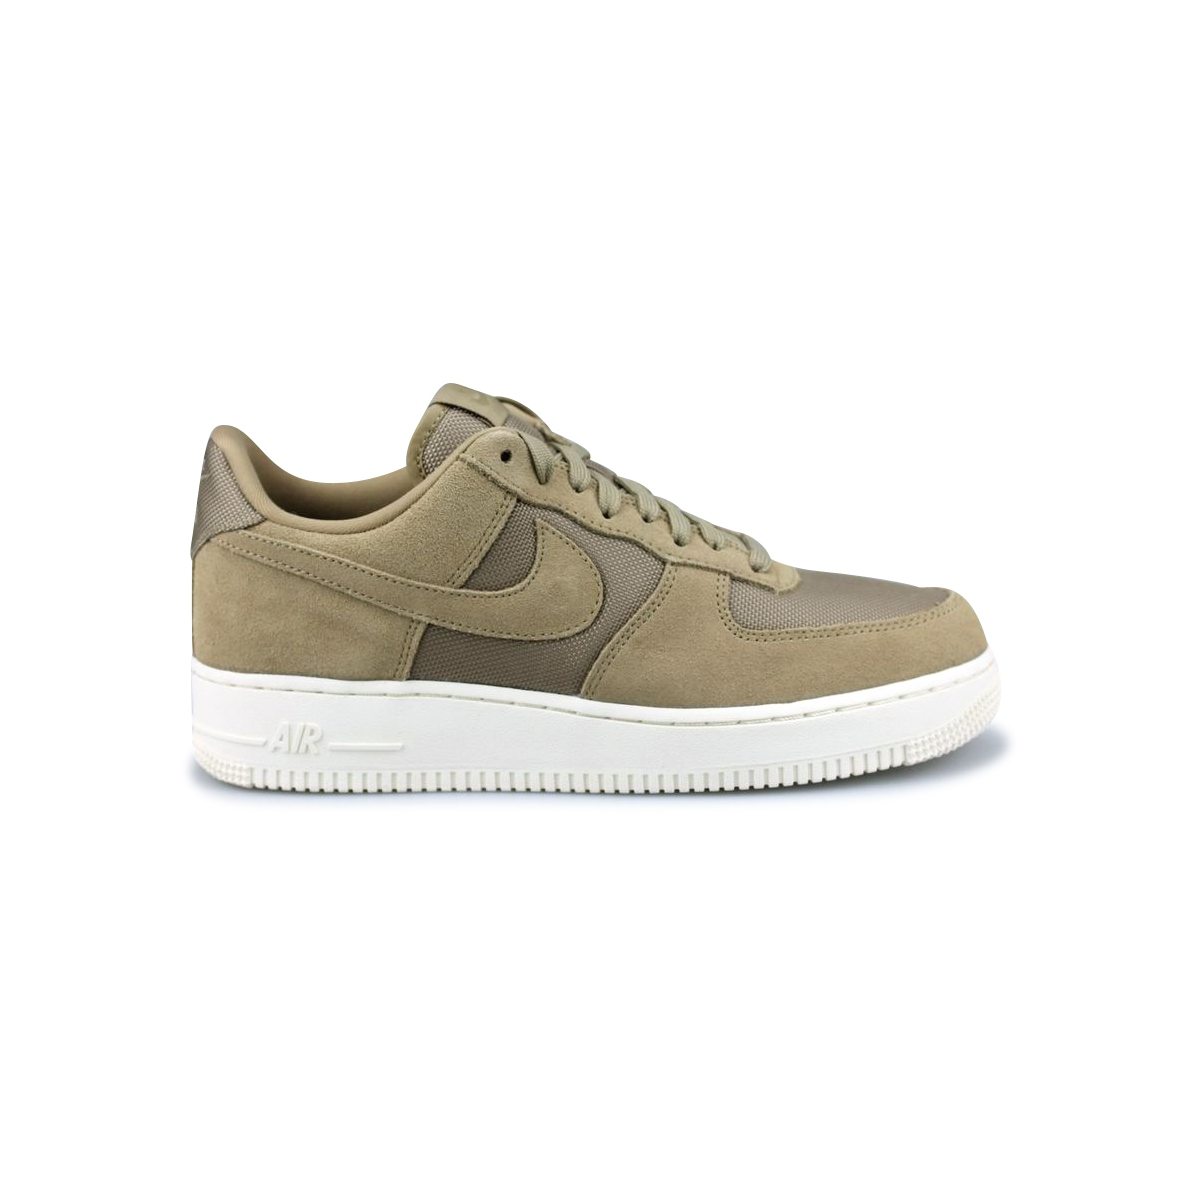 low priced 951a6 f04ec NIKE AIR FORCE 1 07 1 BEIGE AO2409-200